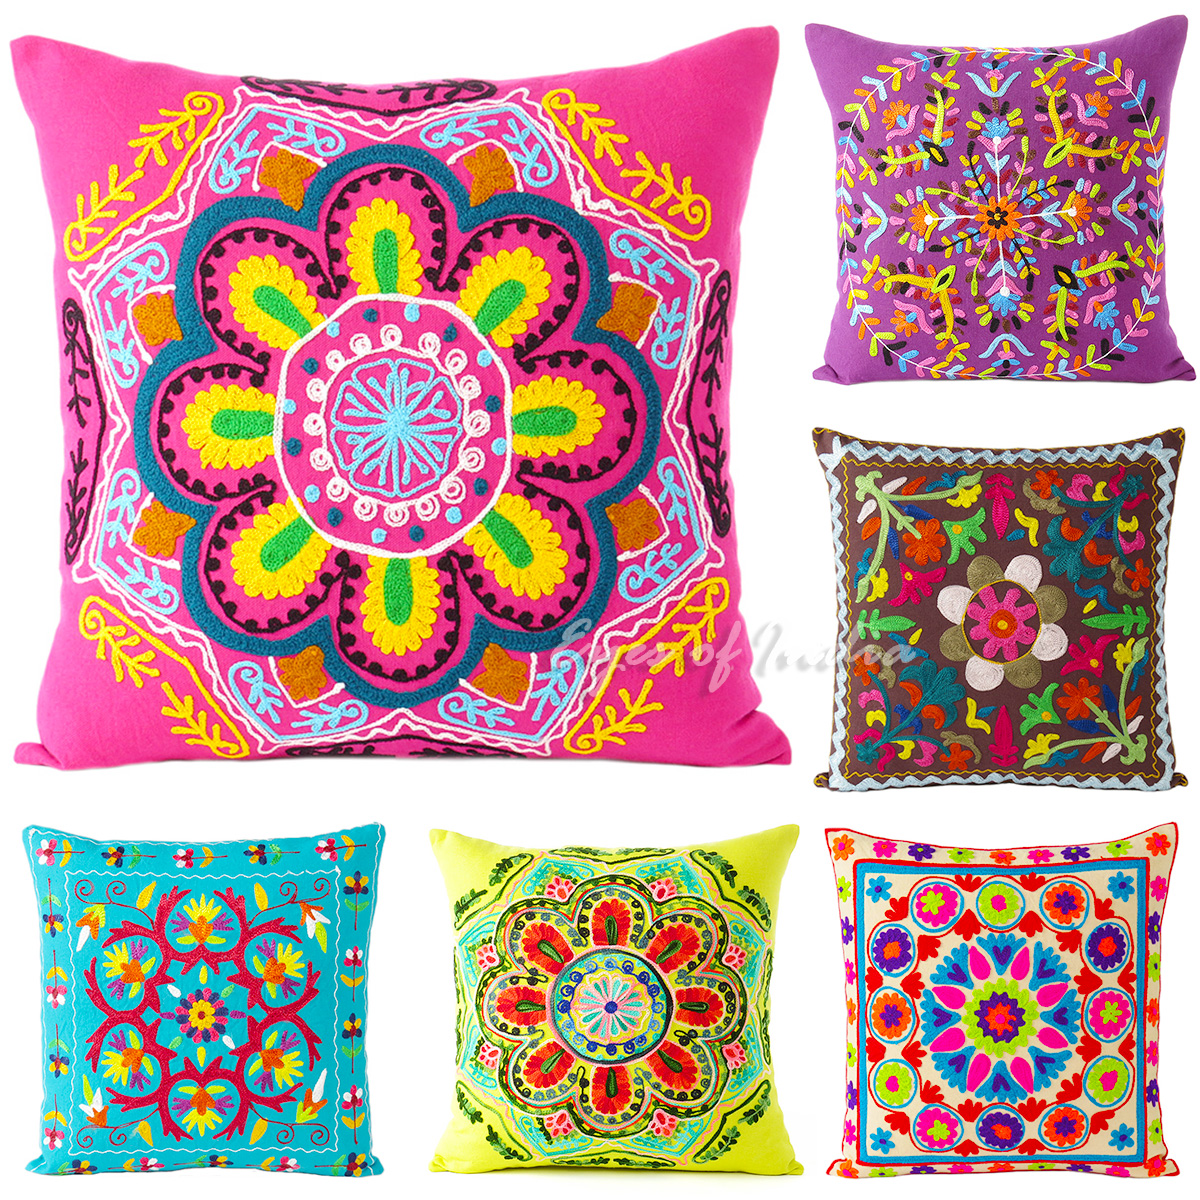 Large selection 16 embroidered decorative pillow for Housse de coussin 55x55